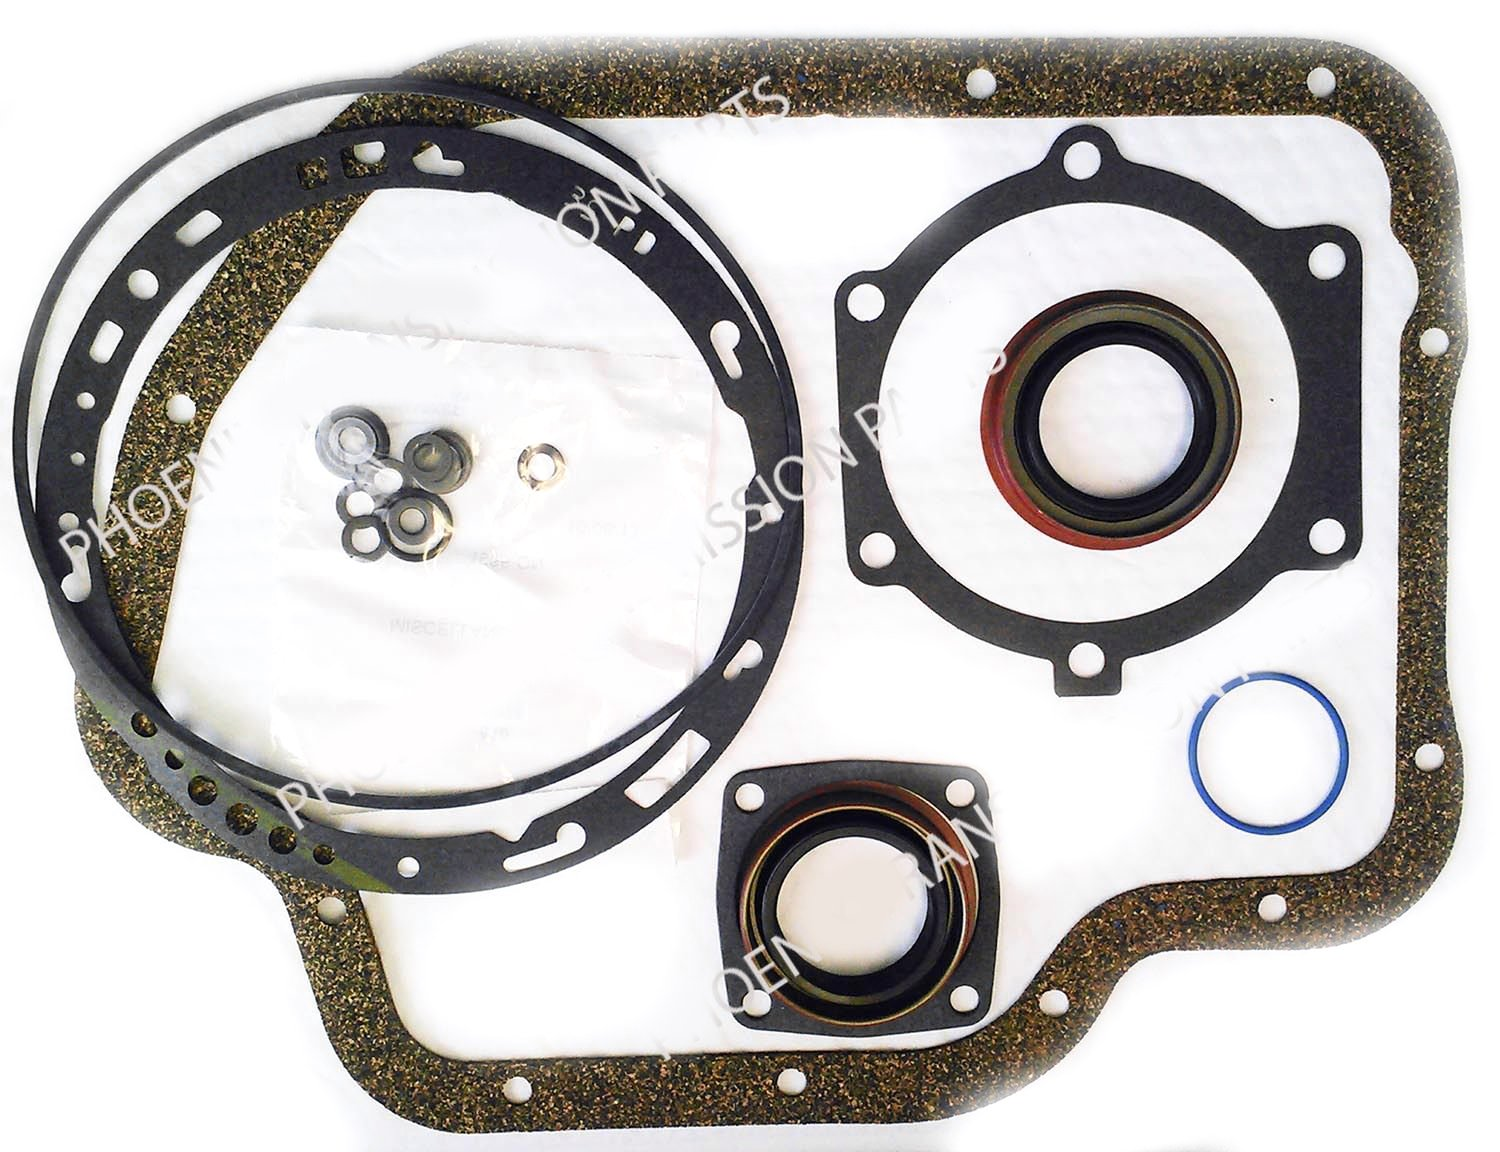 TH400 Transmission External Gasket and Seal Kit - 1965 and Up.